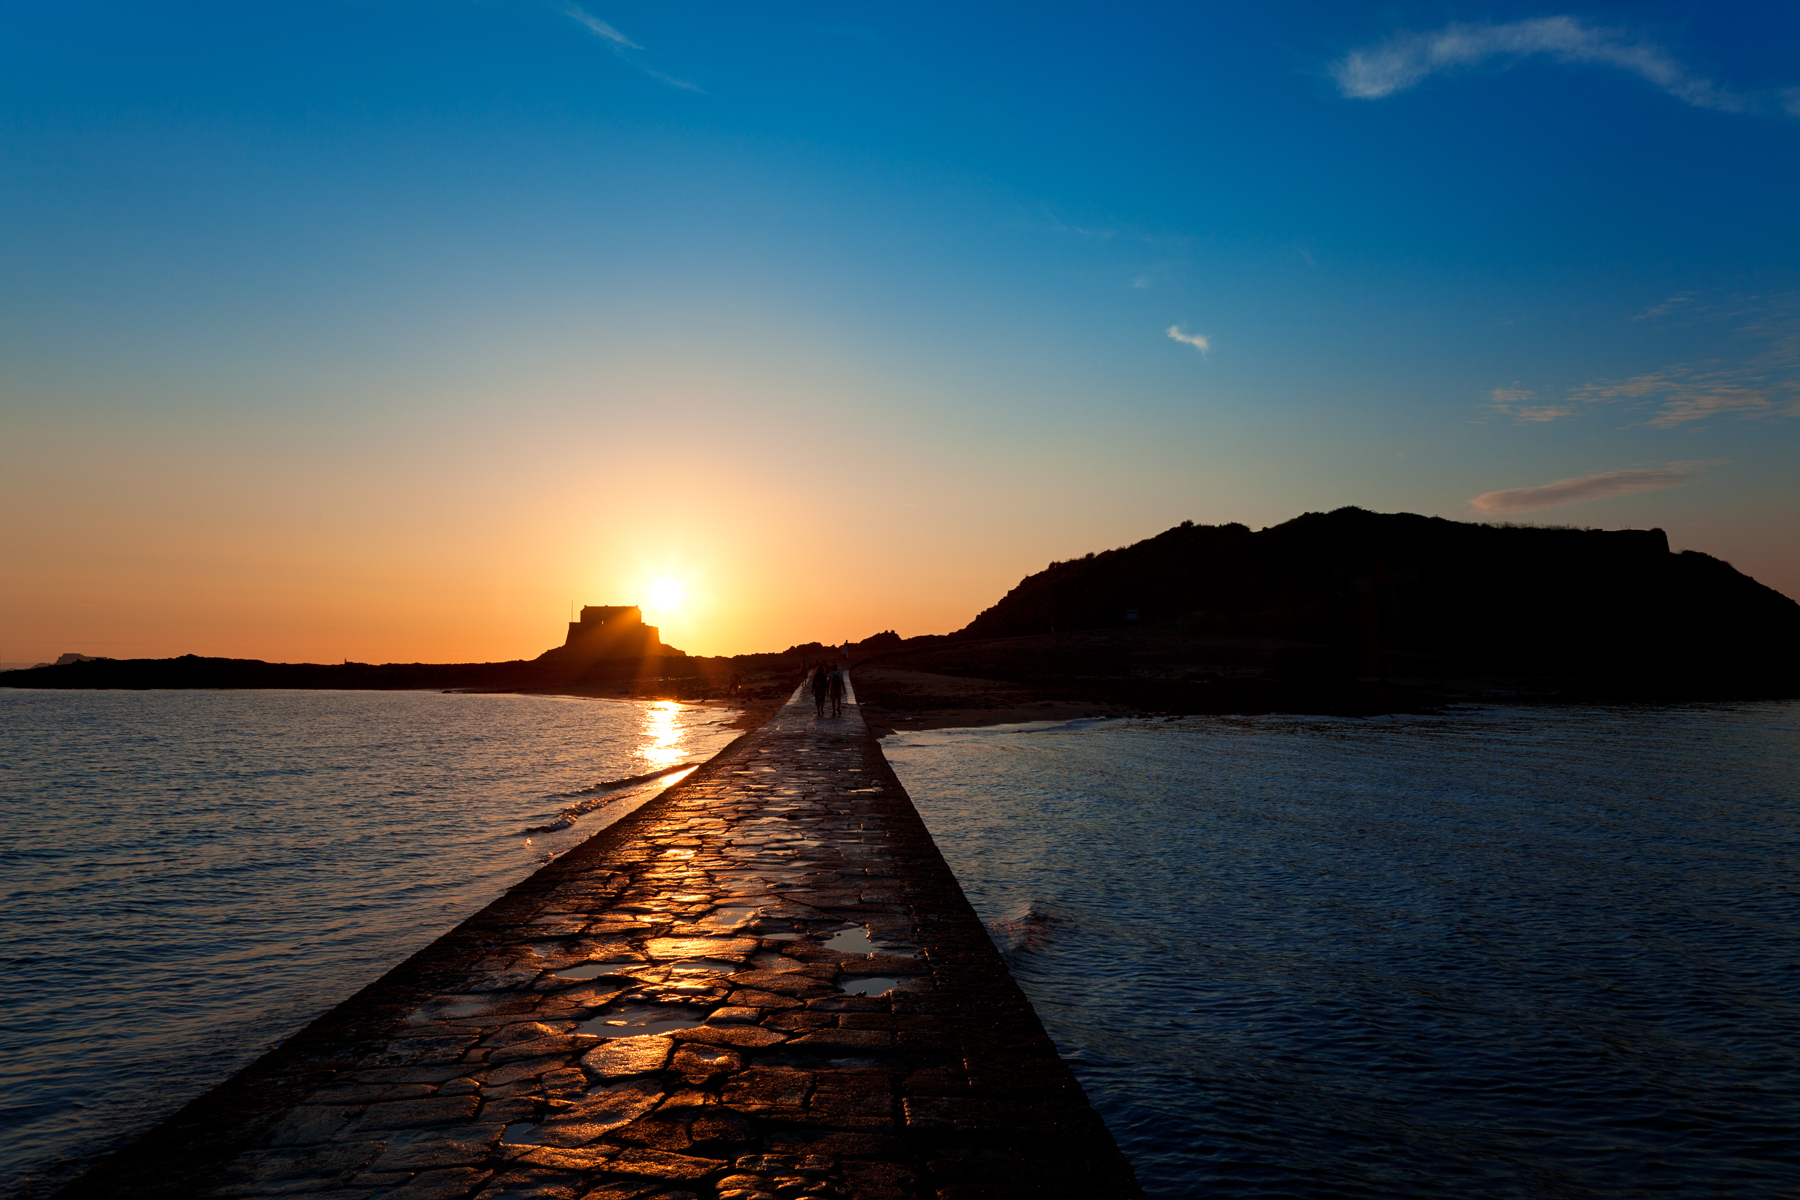 Saint-malo sunset scenery photo